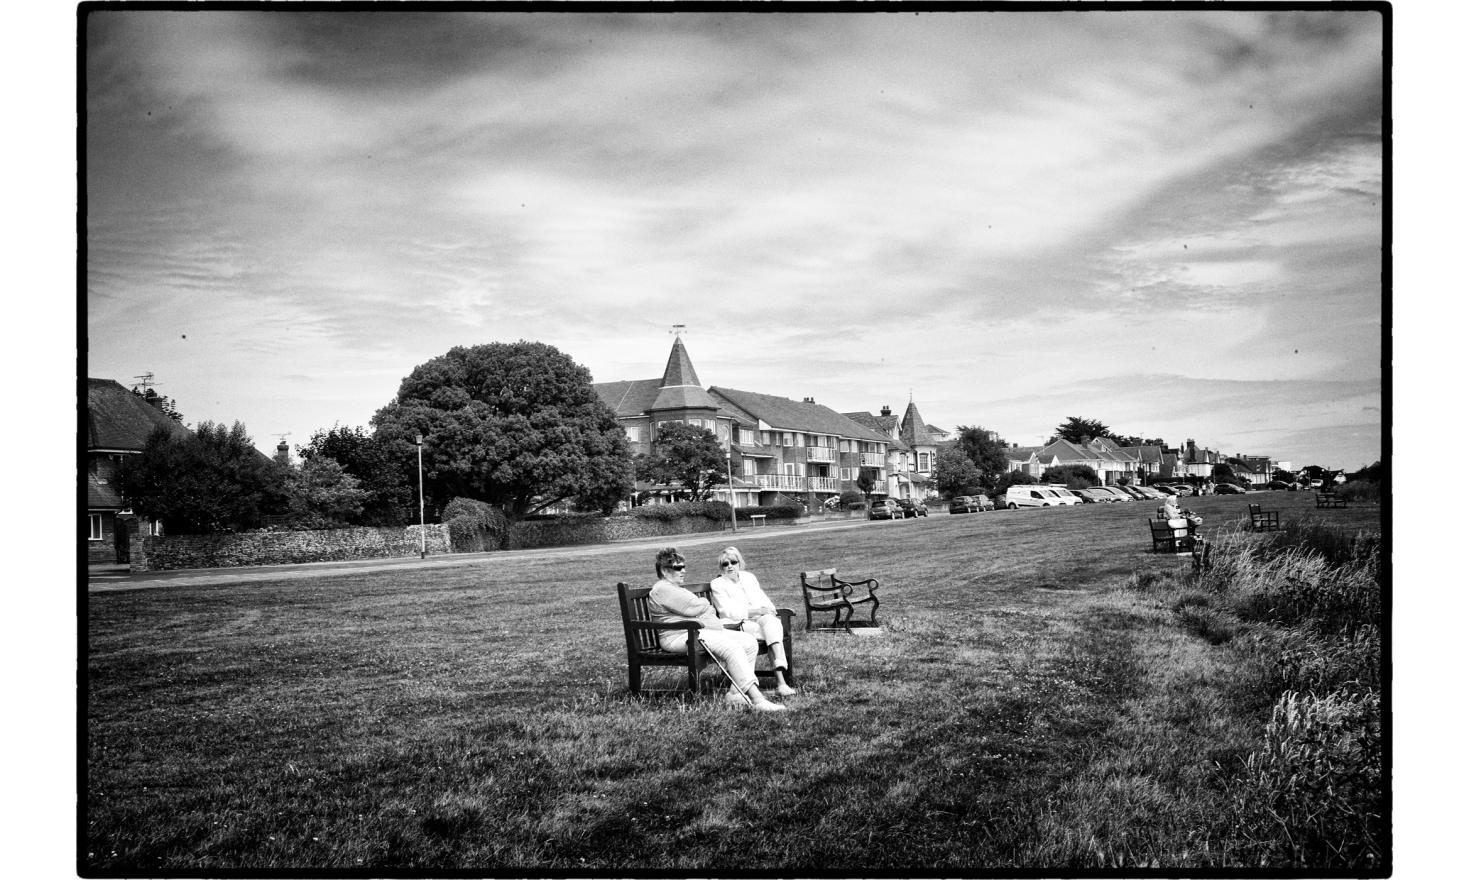 """Not far from Clacton , there is a very fancy town,Frinton. 65% of the Trending district has voted for the """"leave""""the EU. Frinton, England. July 2016."""